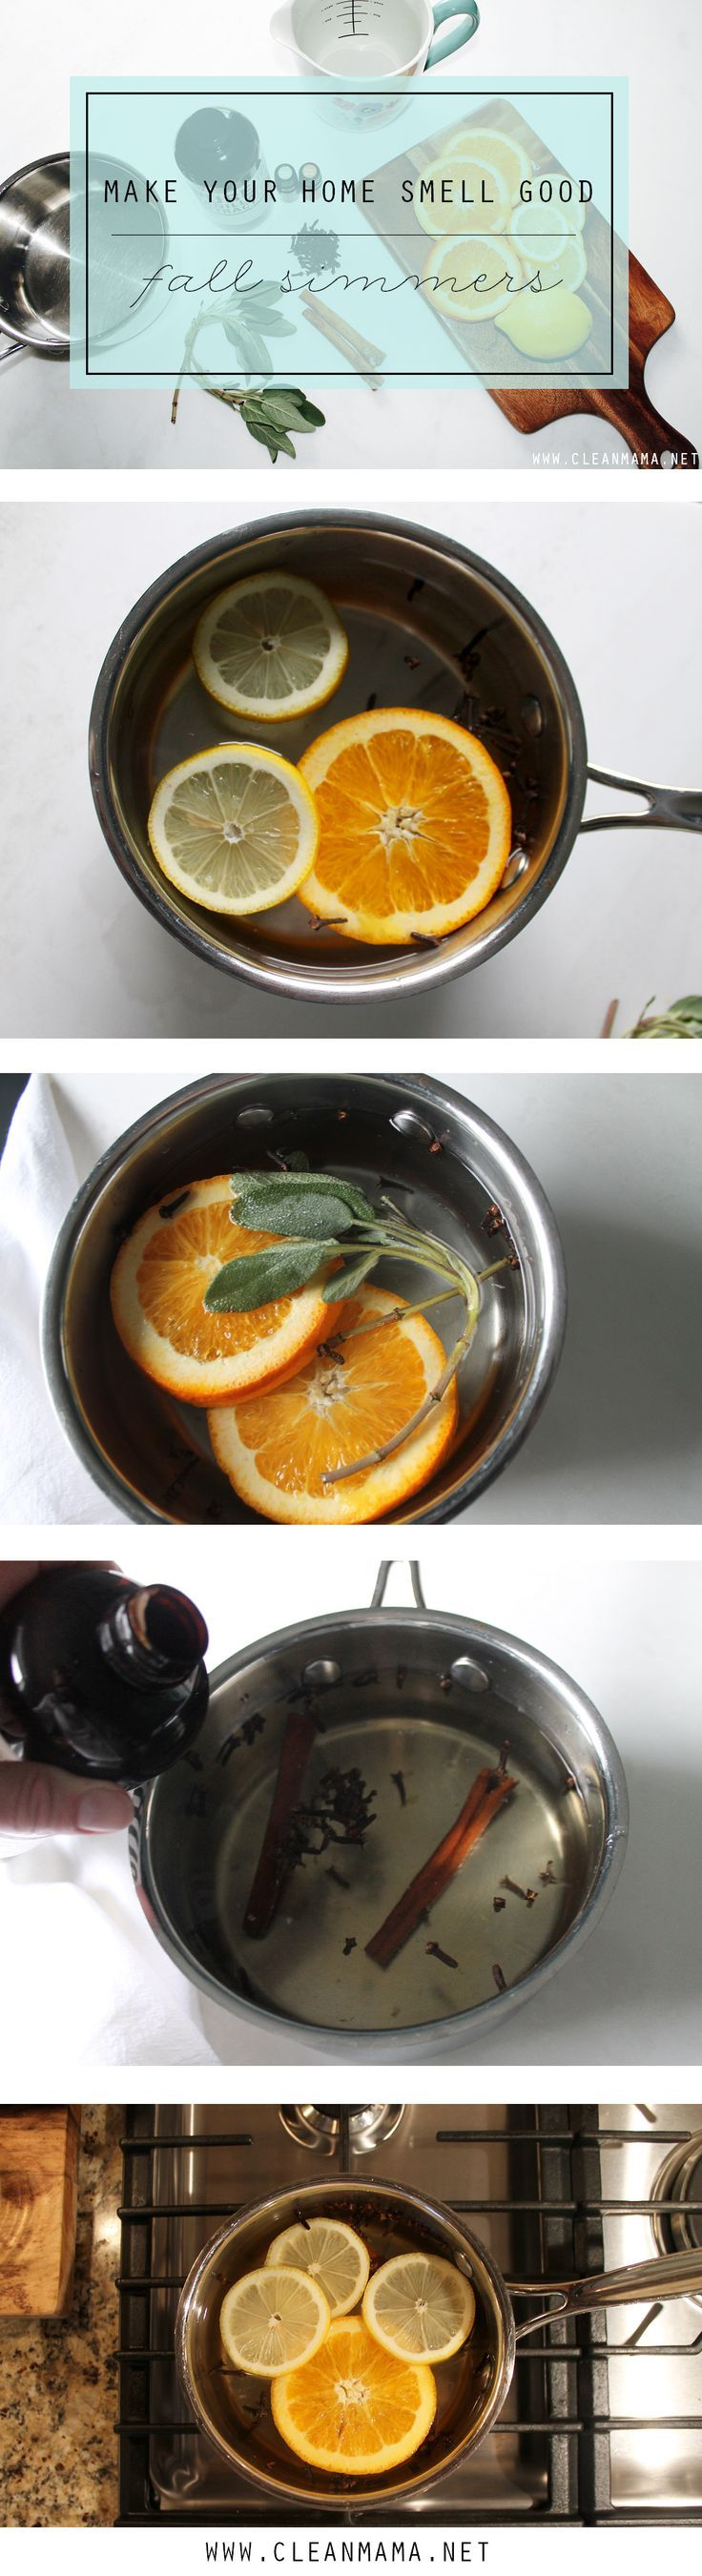 Make Your Home Smell Good   Fall Simmers  Clean MamaCleaning. 25  best ideas about Clean mama on Pinterest   Essential oil